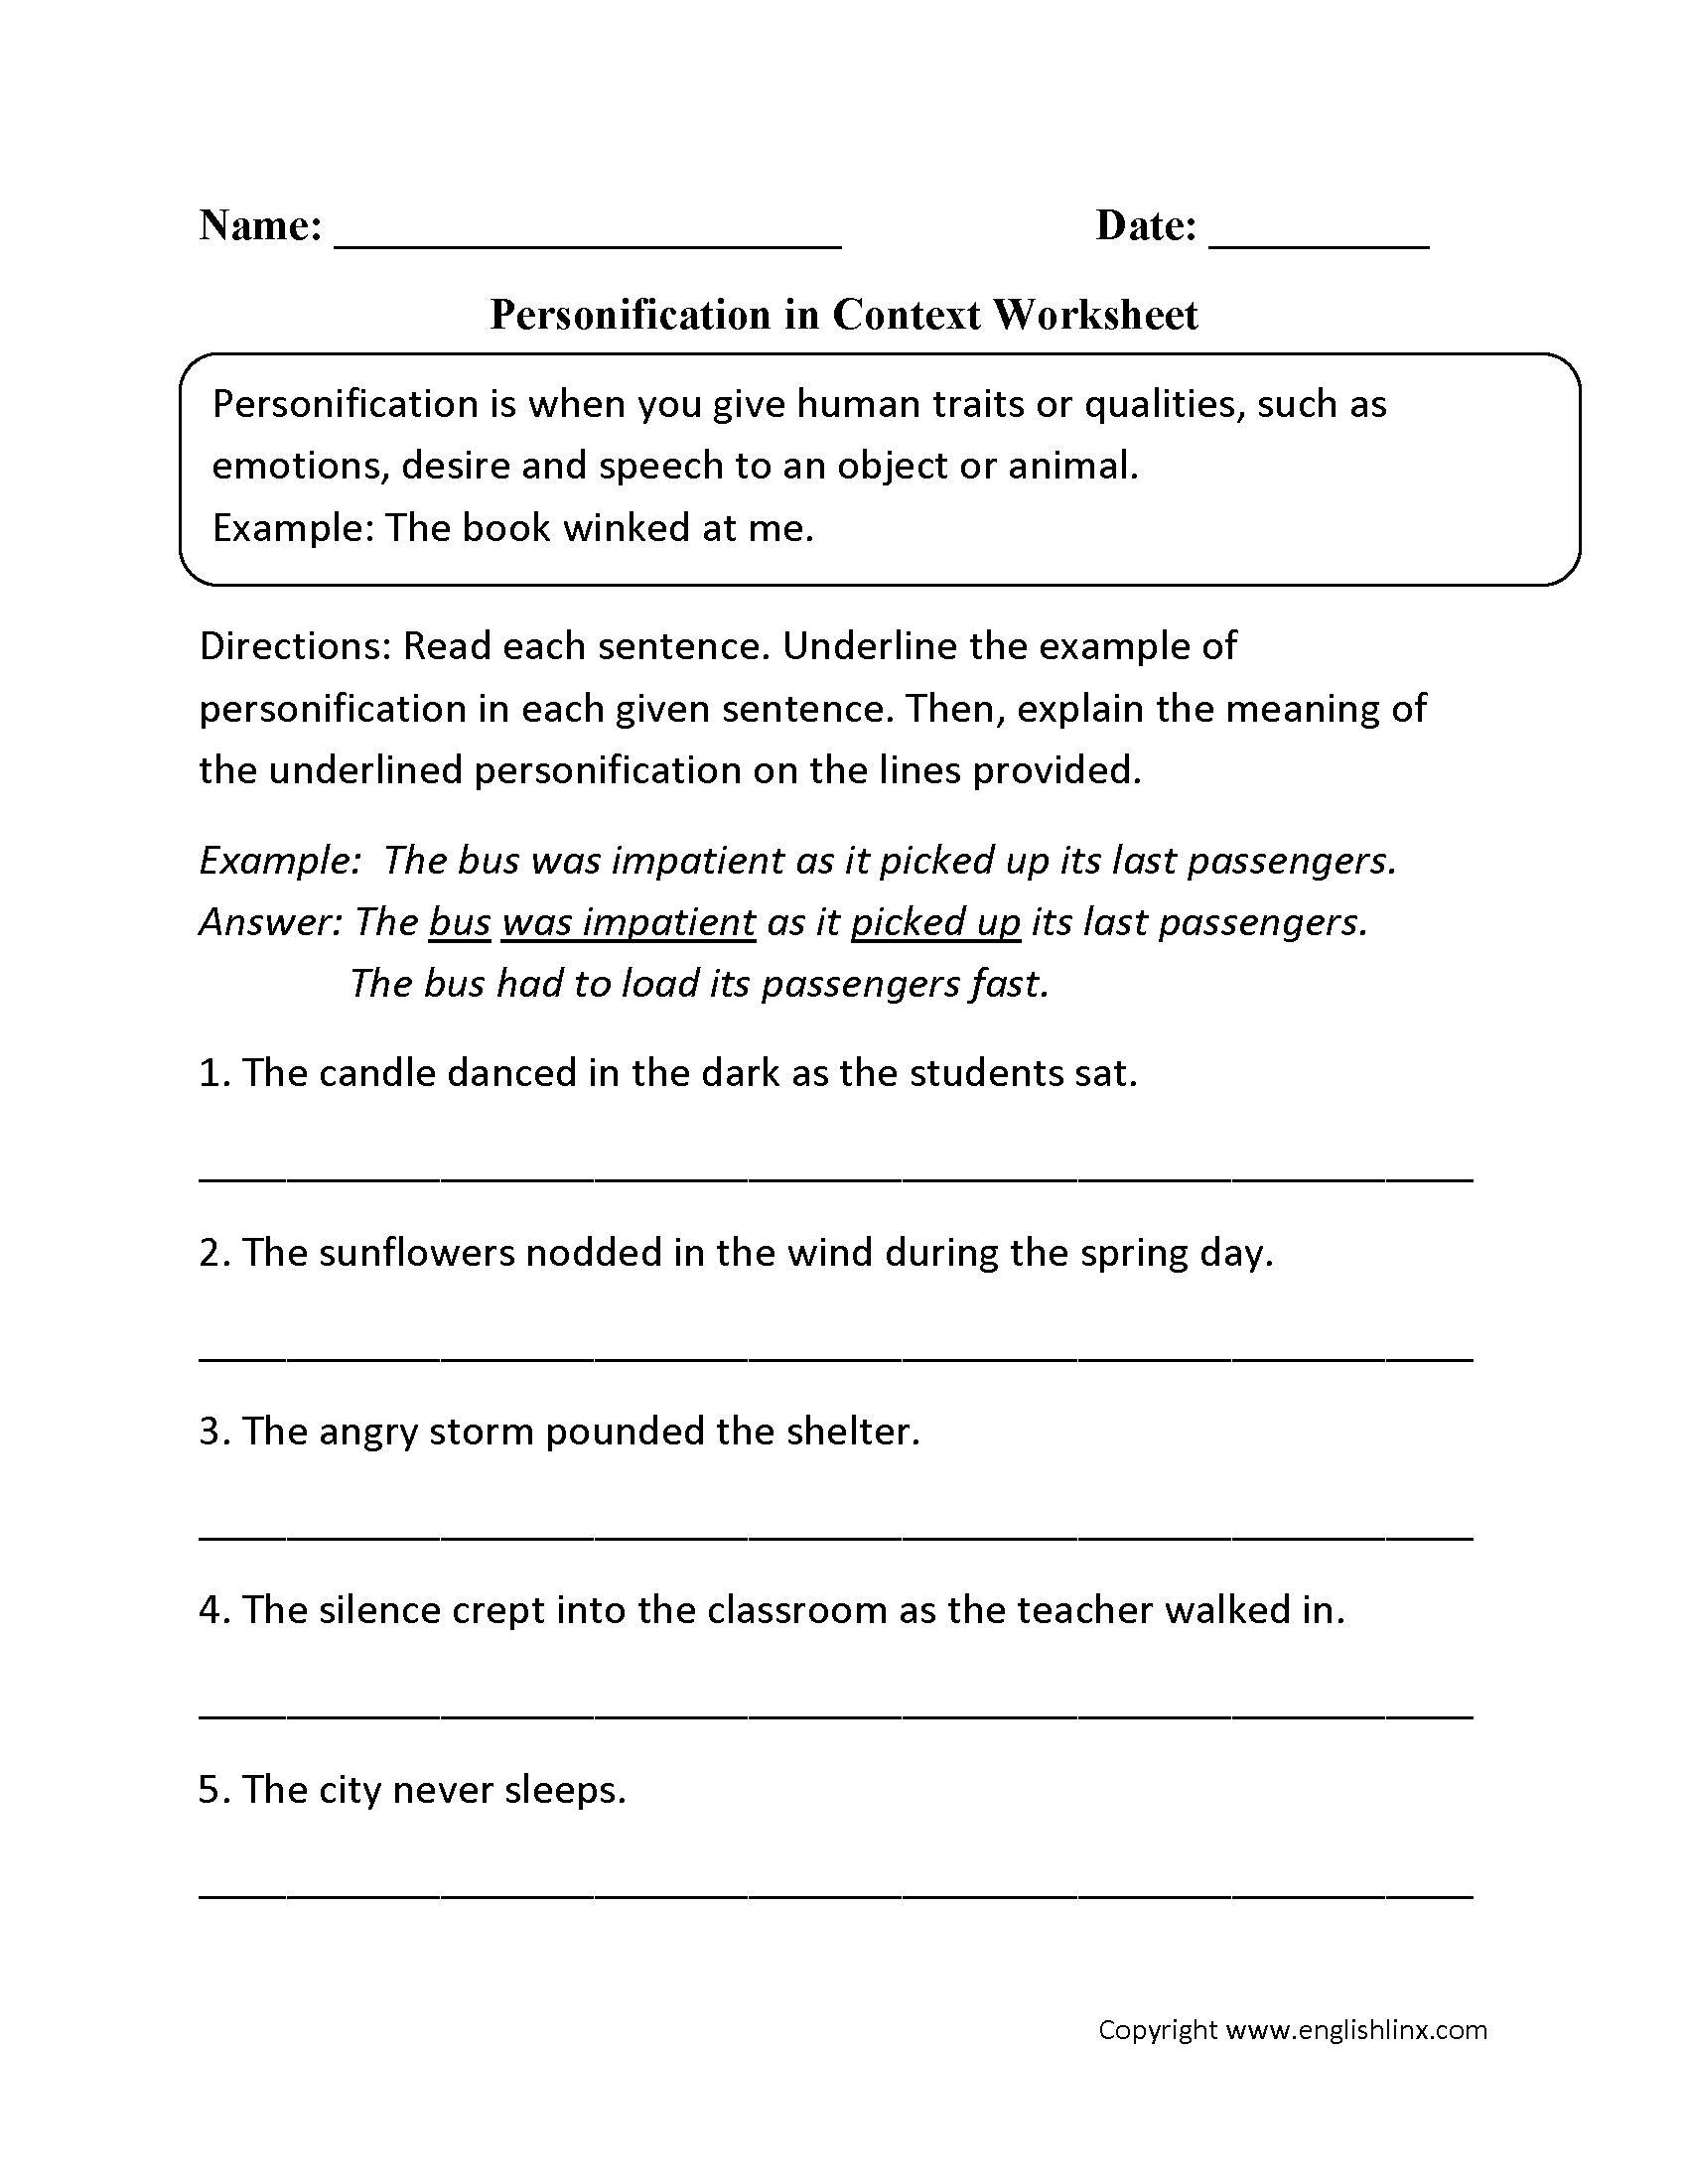 Worksheets Personification Worksheets personification figurative language worksheets schoolteaching worksheets